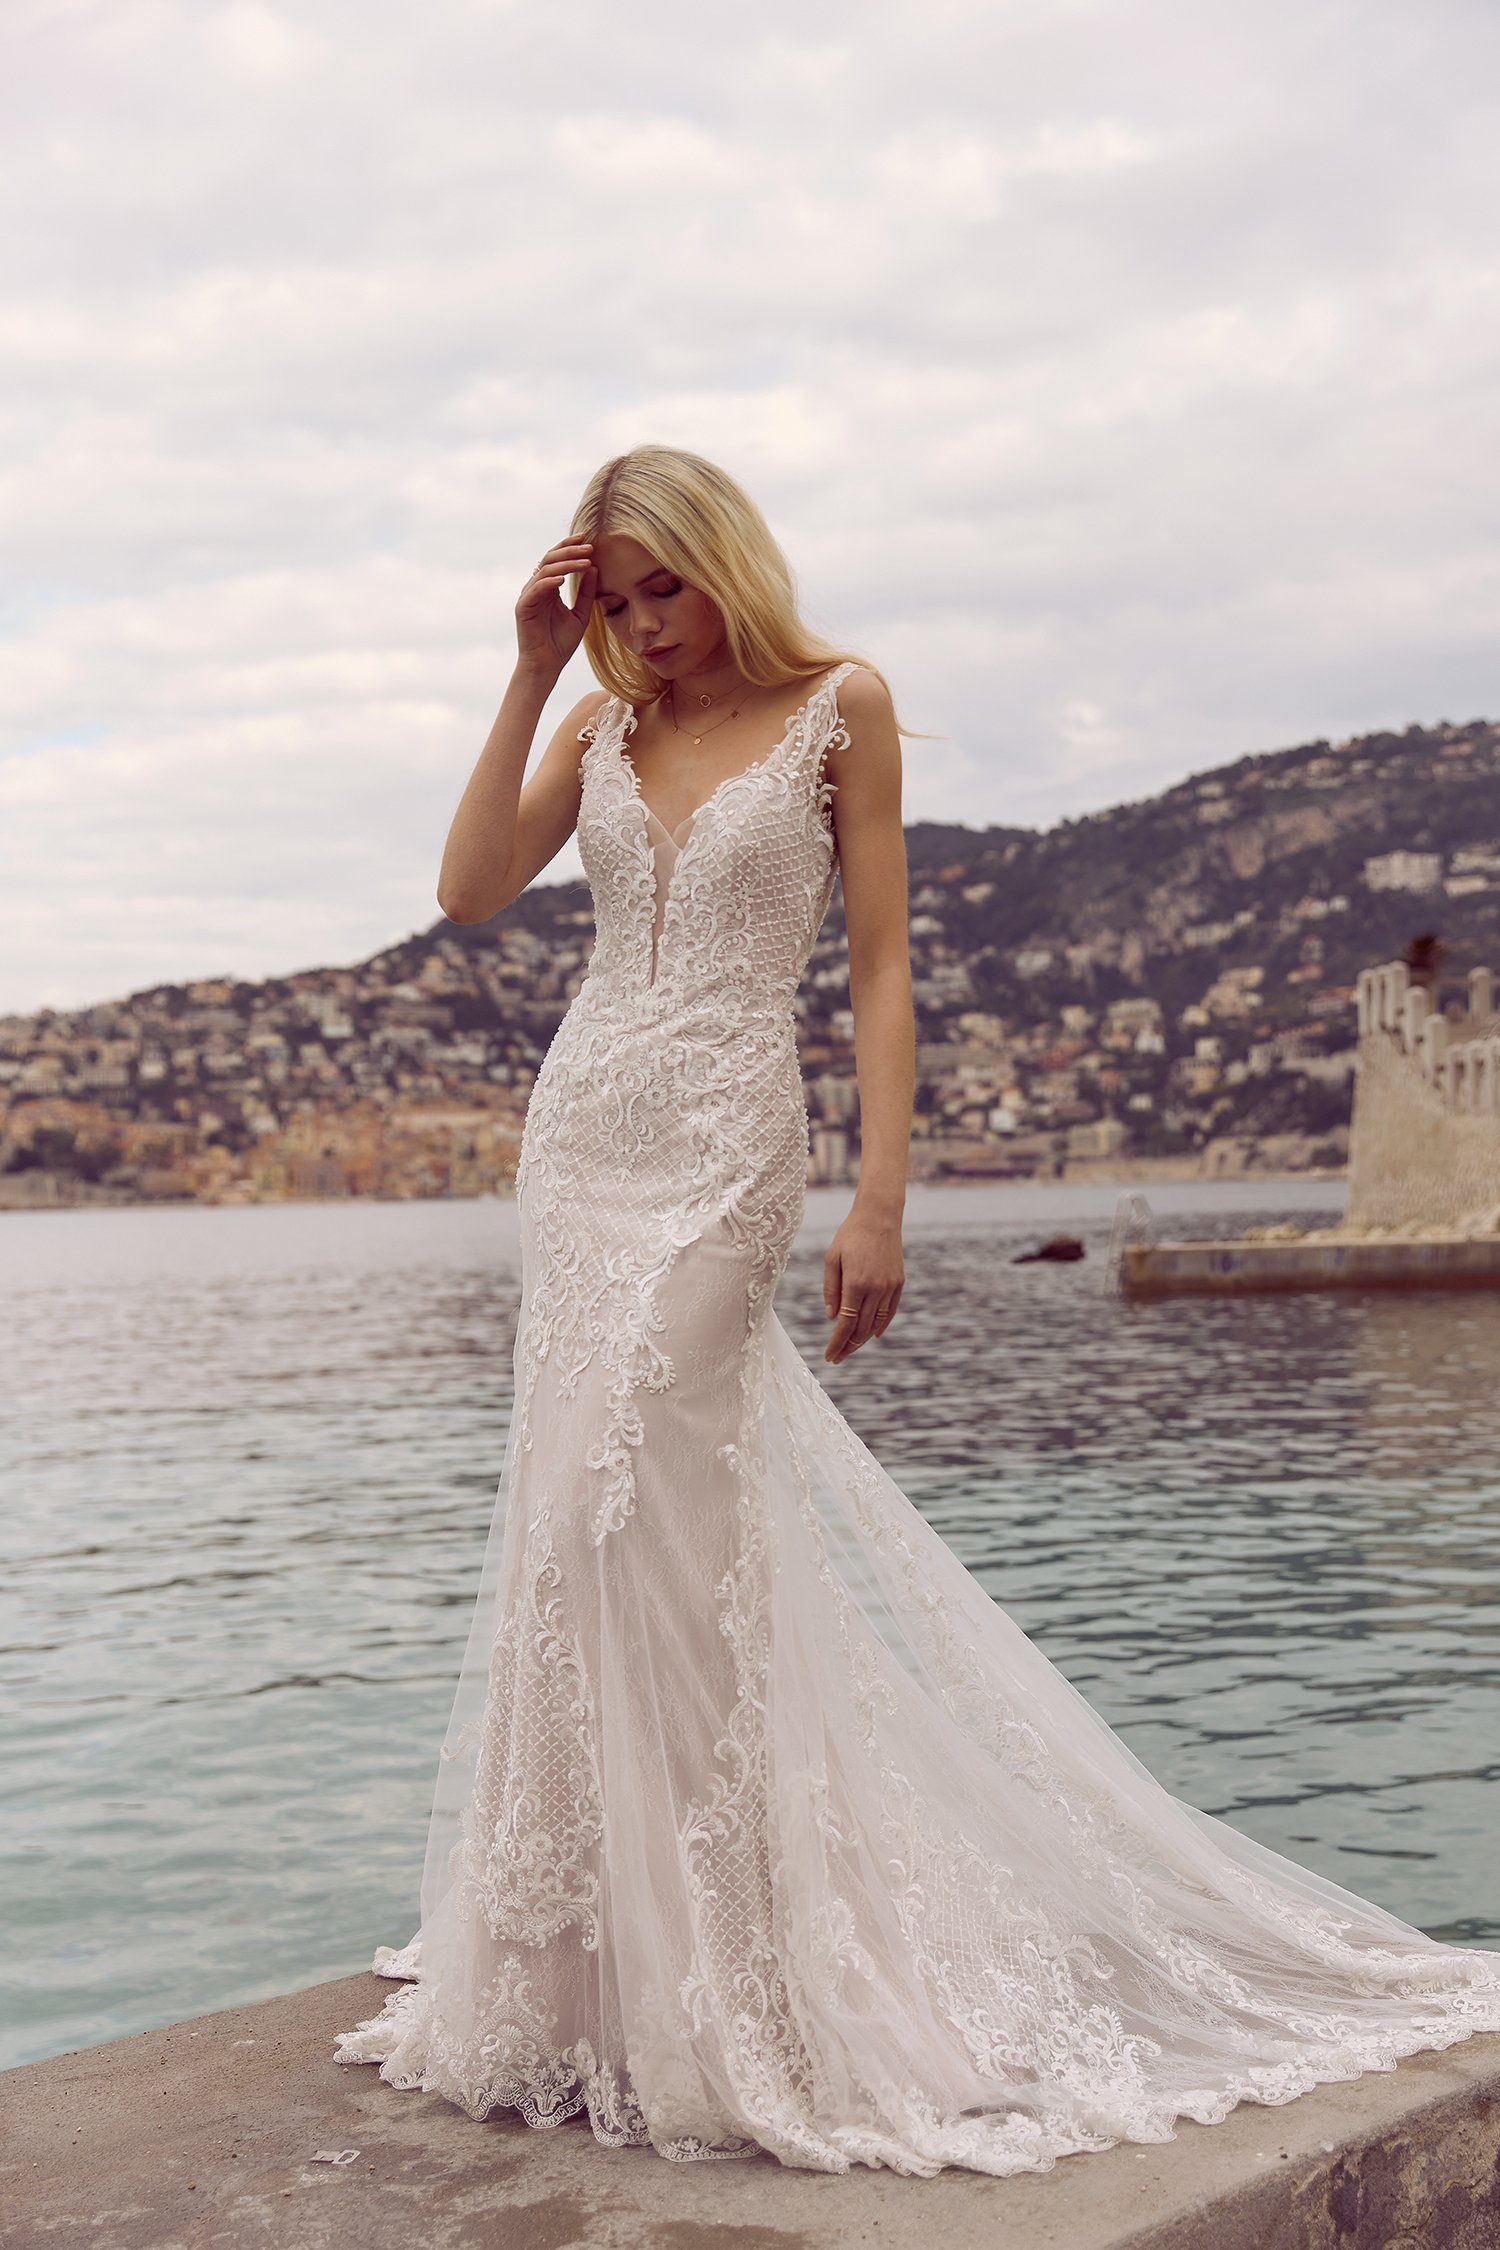 RADA-ML3718-LACE-FITTED-GOWN-WITH-PLUNGE-NECKLINE-LOW-BACK–LACE-STRAPS-WEDDING-DRESS-MADI-LANE-BRIDAL5